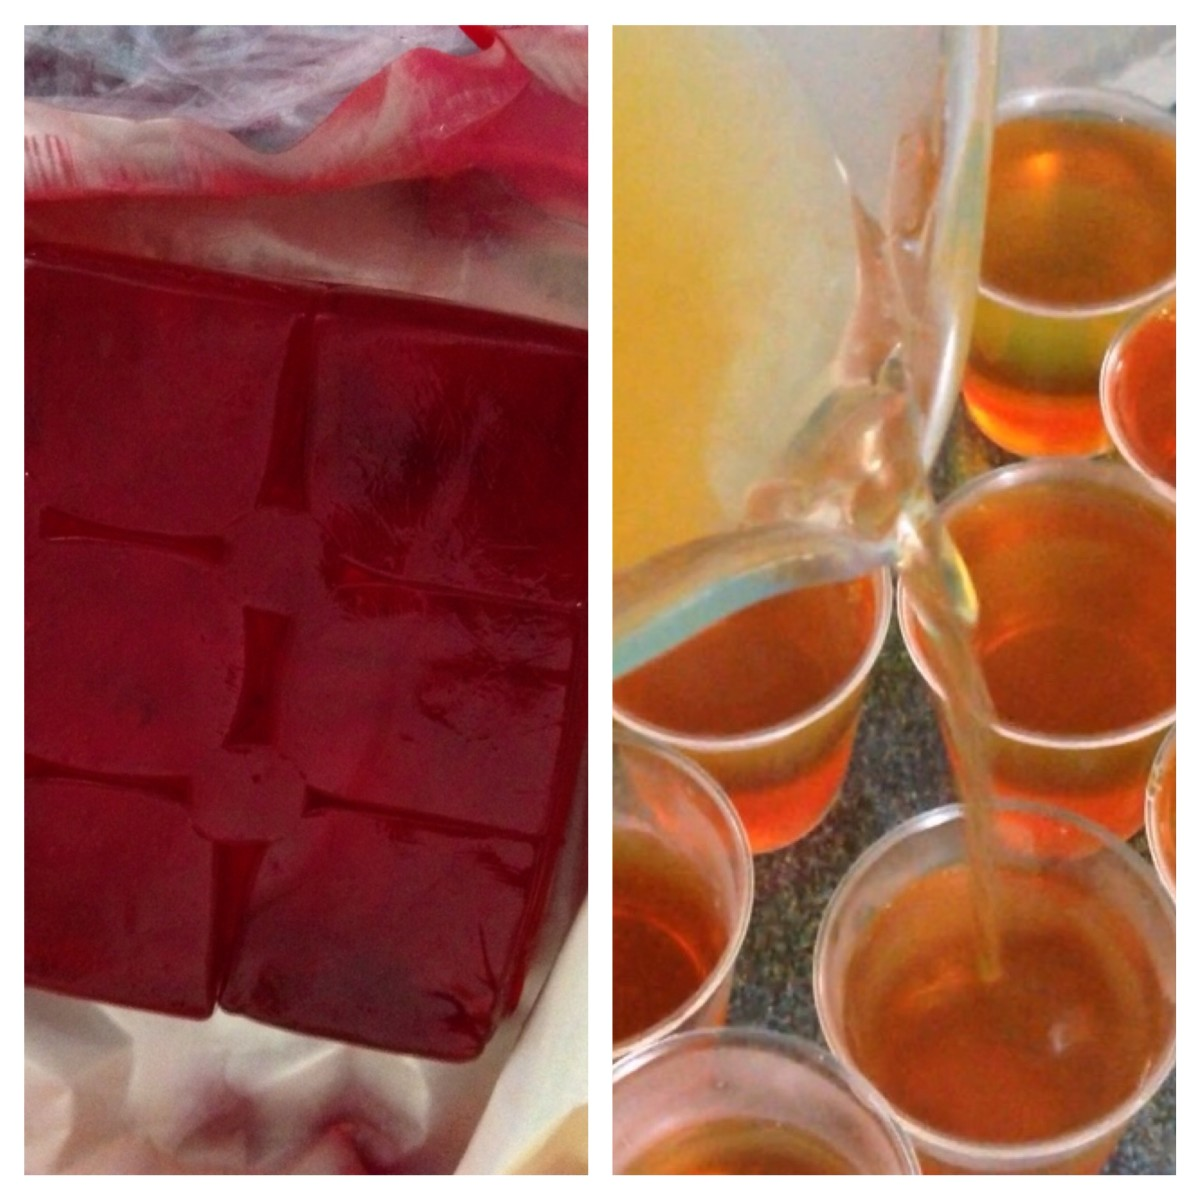 Strawberry Jelly and Shots in Progess